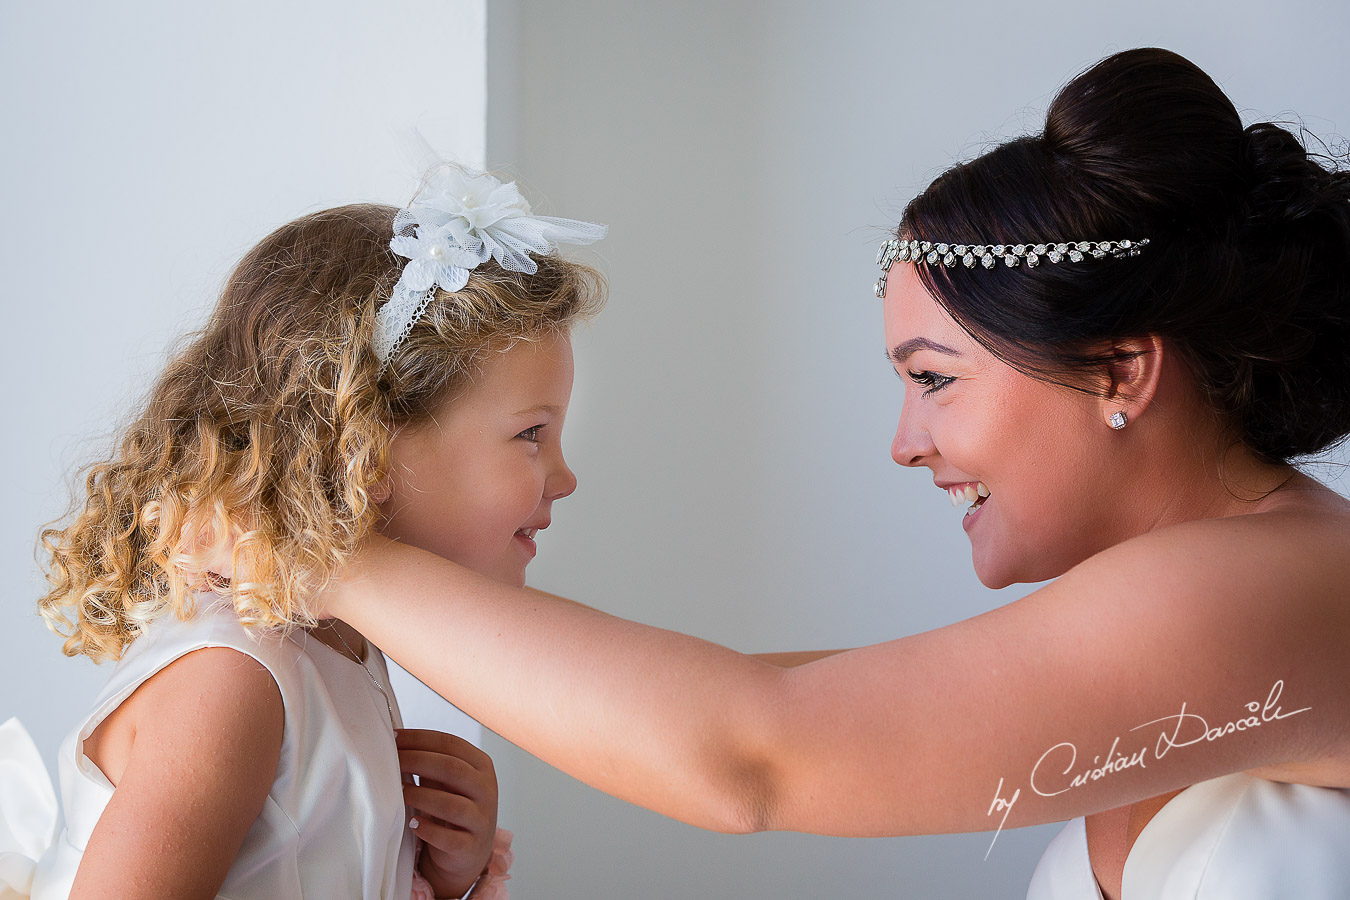 Beautiful bride Amy & her daughter Eva posing before her wedding ceremony at King Evelton Beach and Resort.